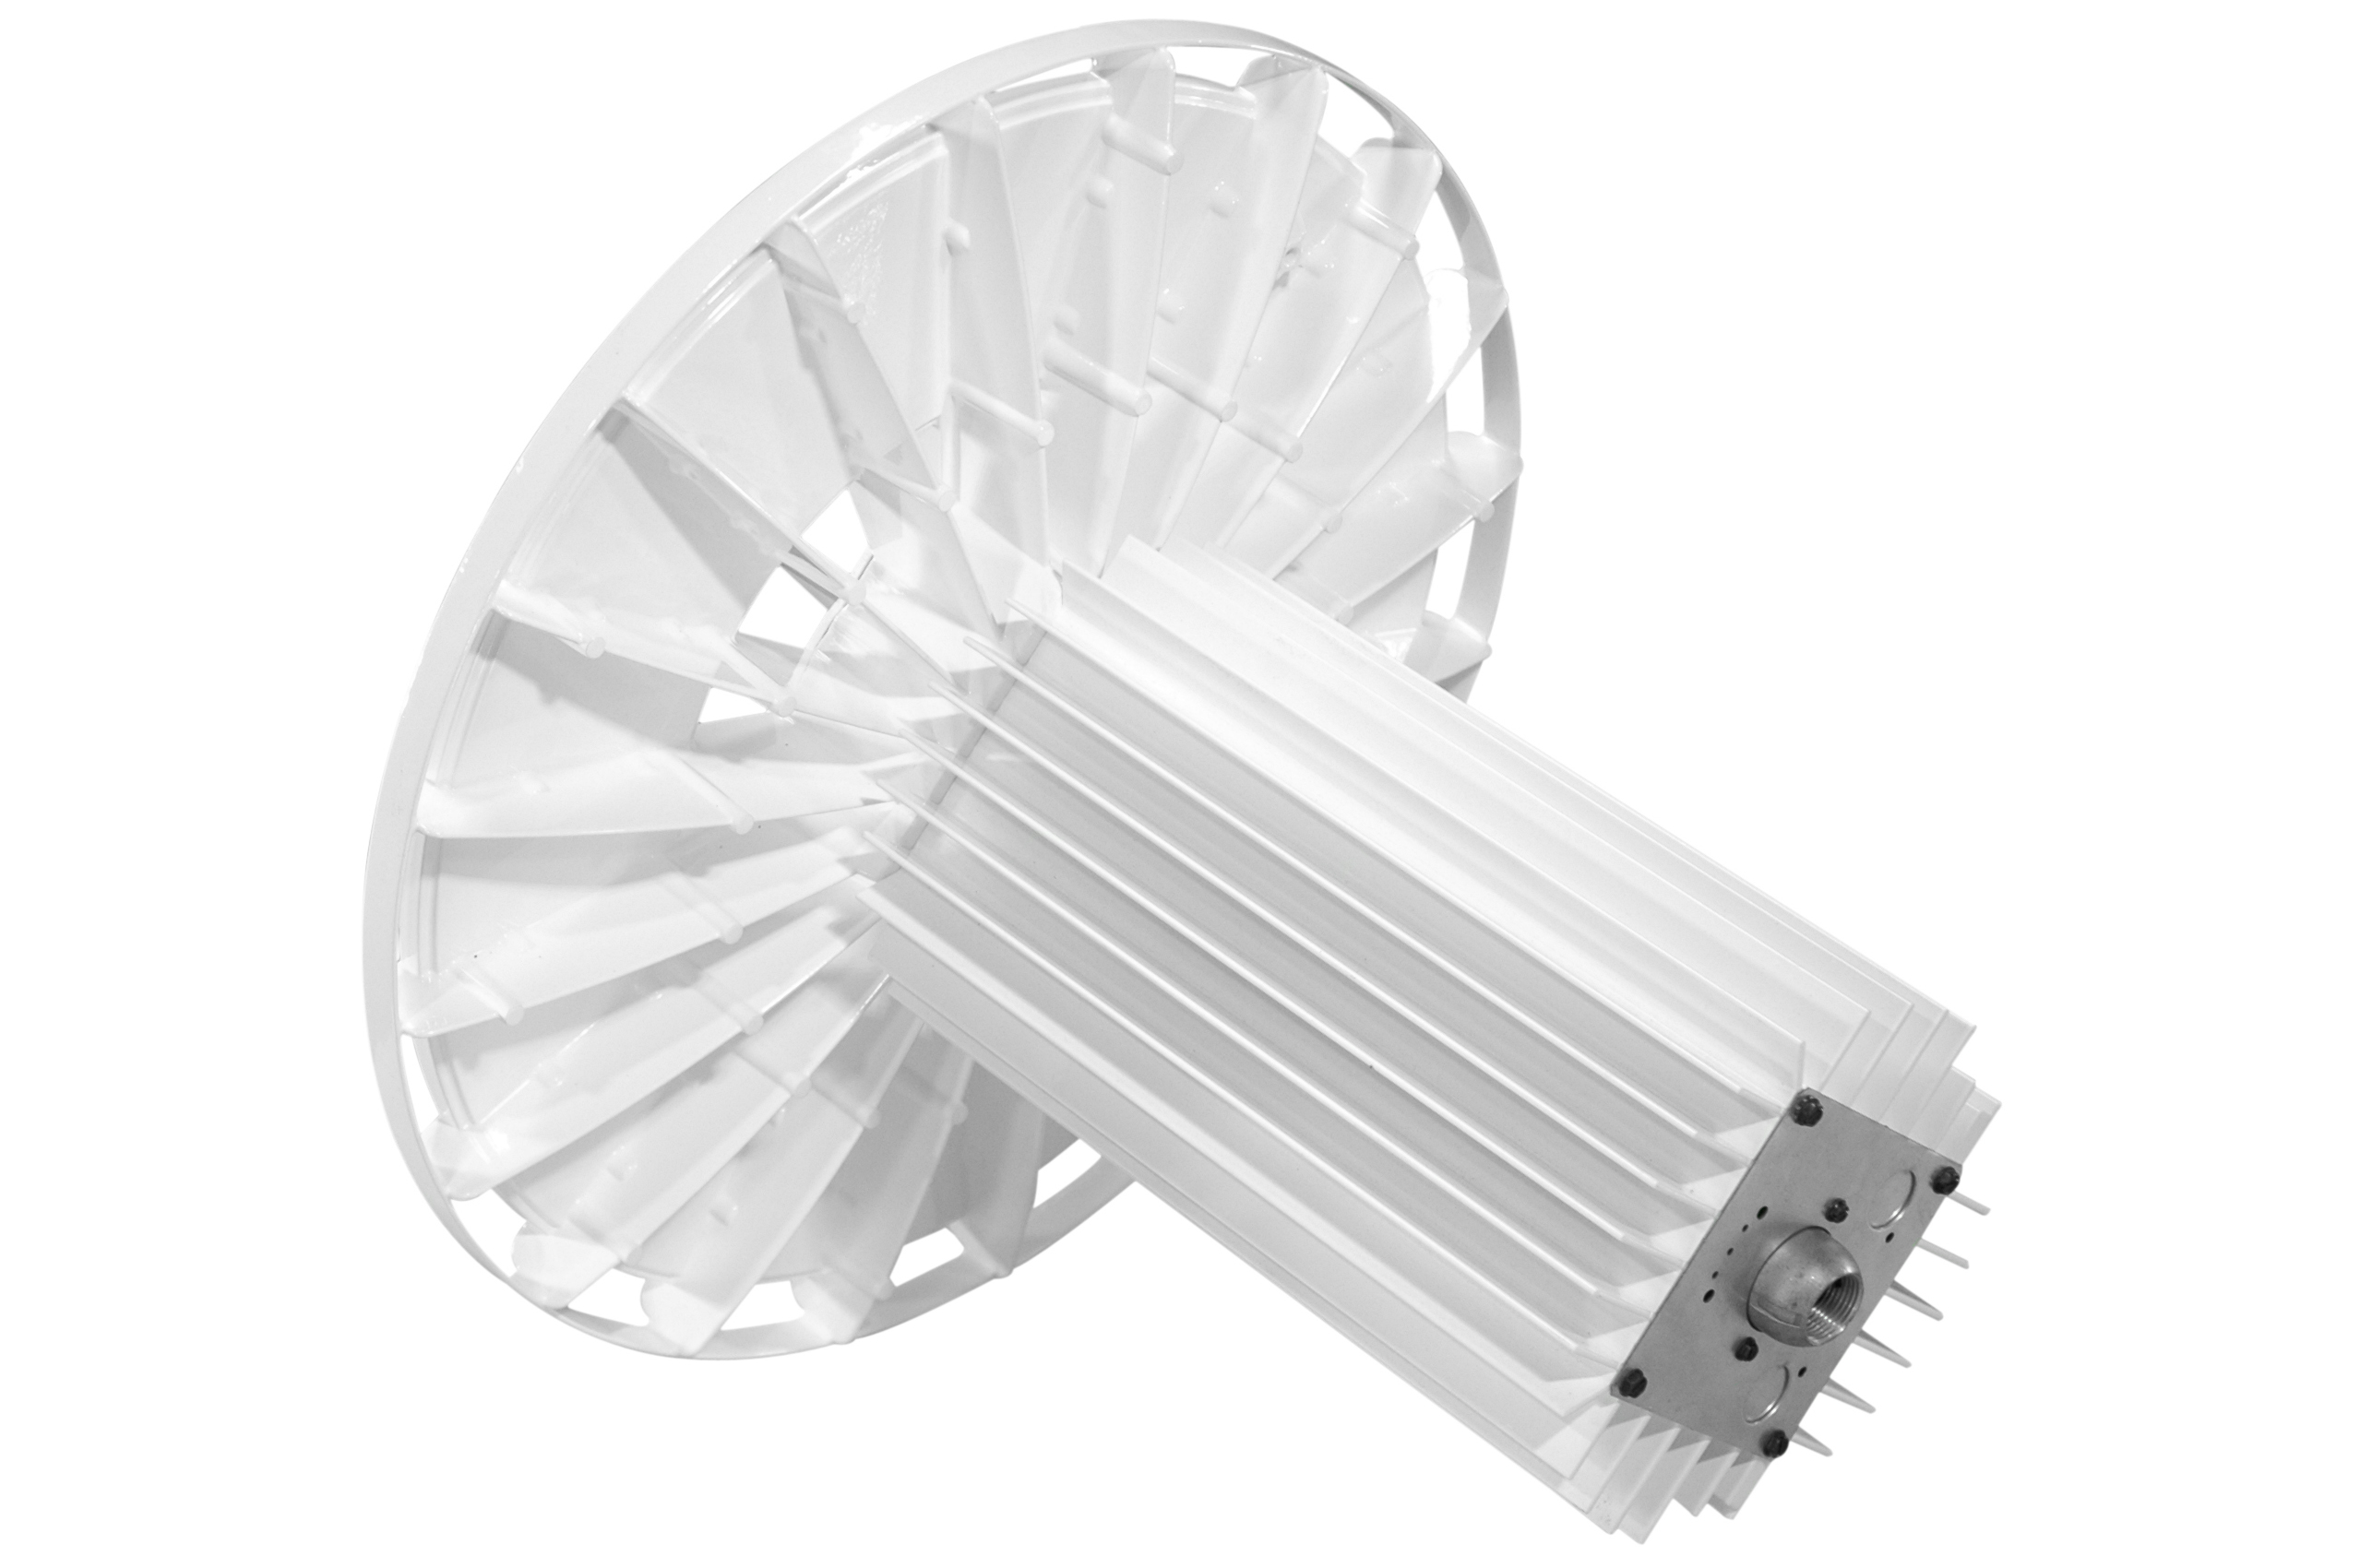 Larson electronics releases a 250 watt led industrial high bay light industrial grade 250 watt high bay led light fixture for general area use250 watt high bay led light fixture approved for use in wet locations arubaitofo Image collections